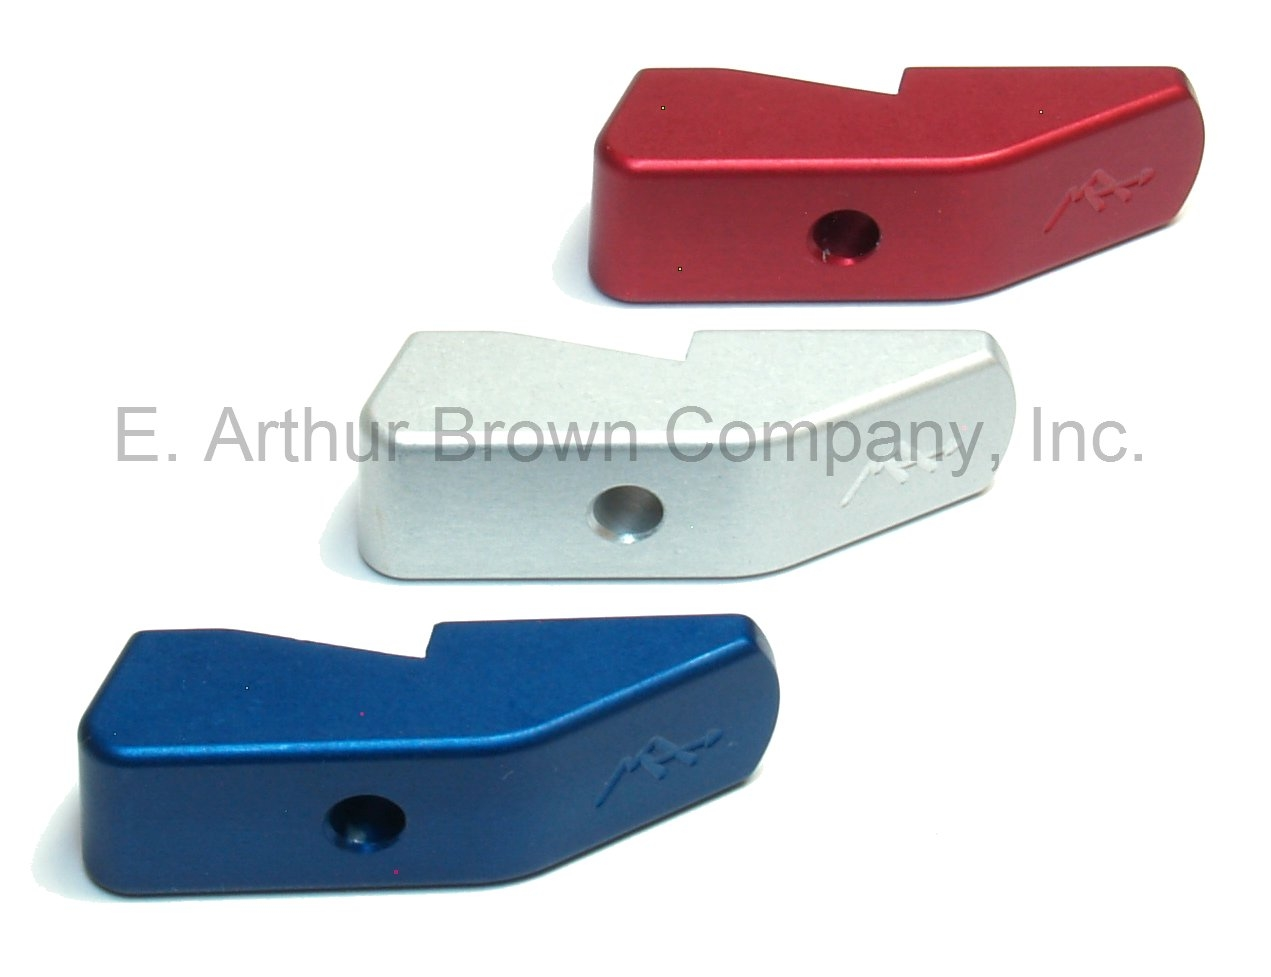 Majestic Arms Magazine Base Pads fit Ruger MKIV 22/45 | Red, White, Blue 3-Pack